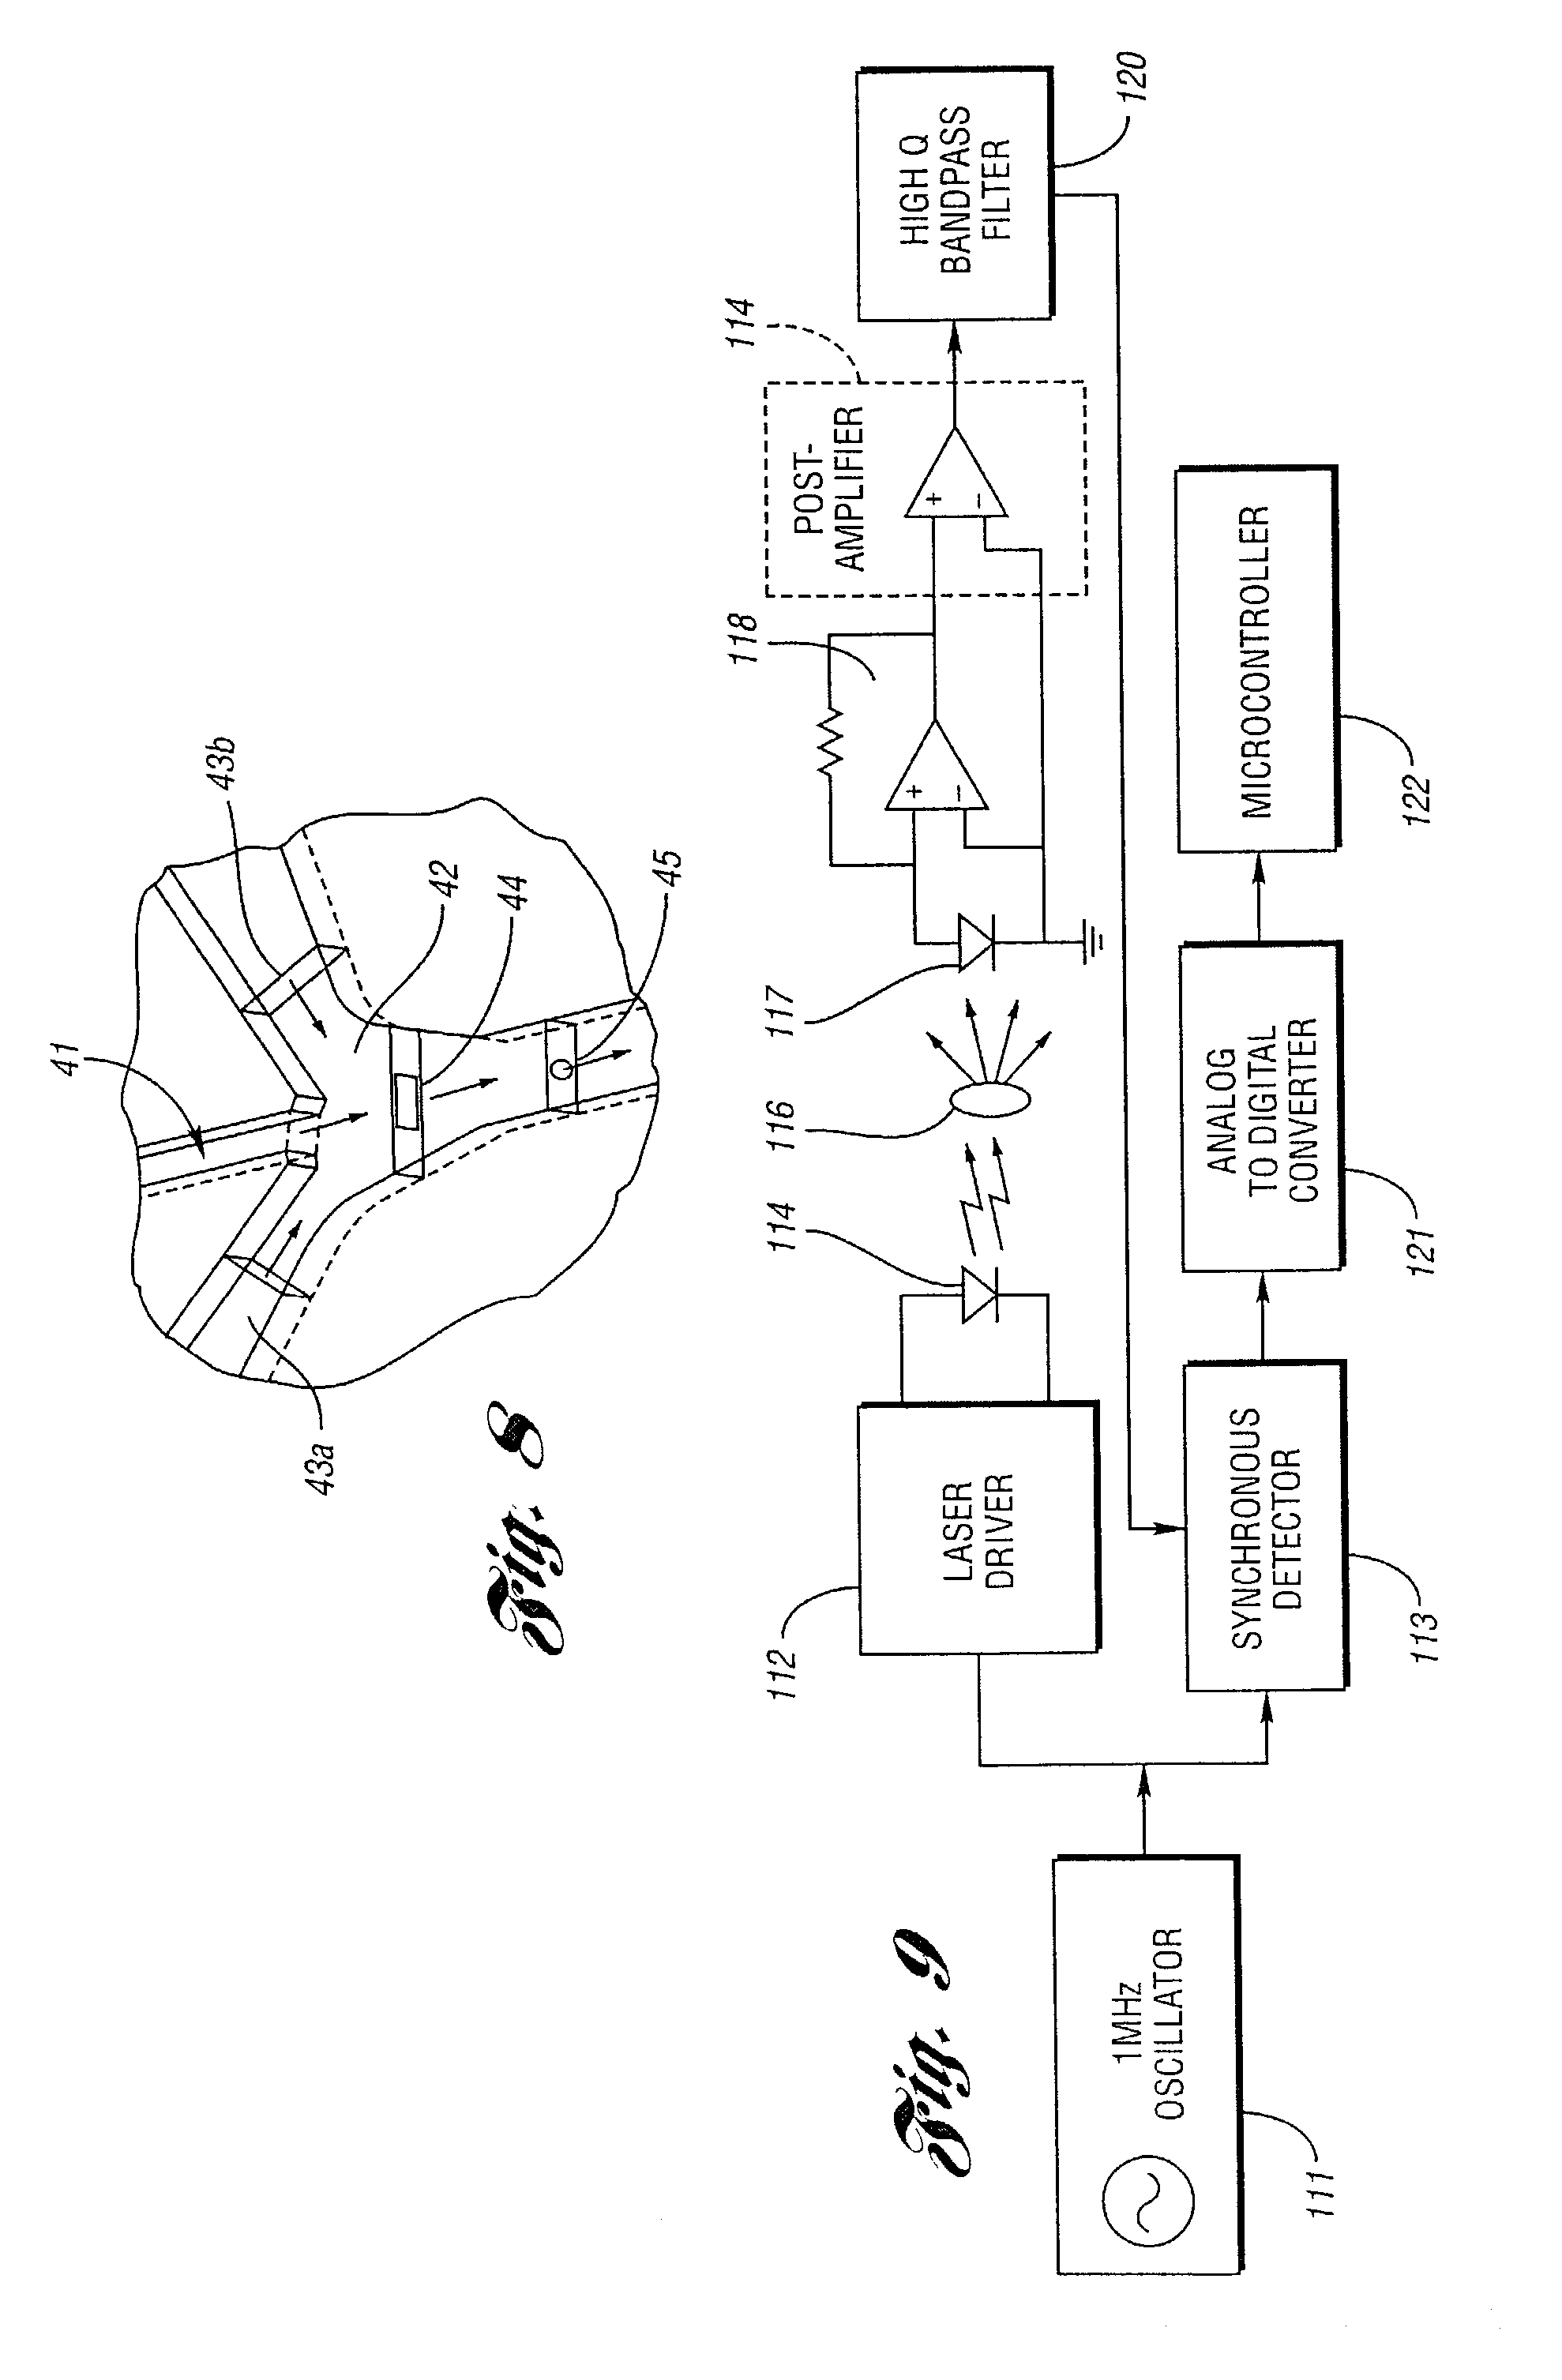 brevet us7105355 - flow cytometers and detection system of lesser size